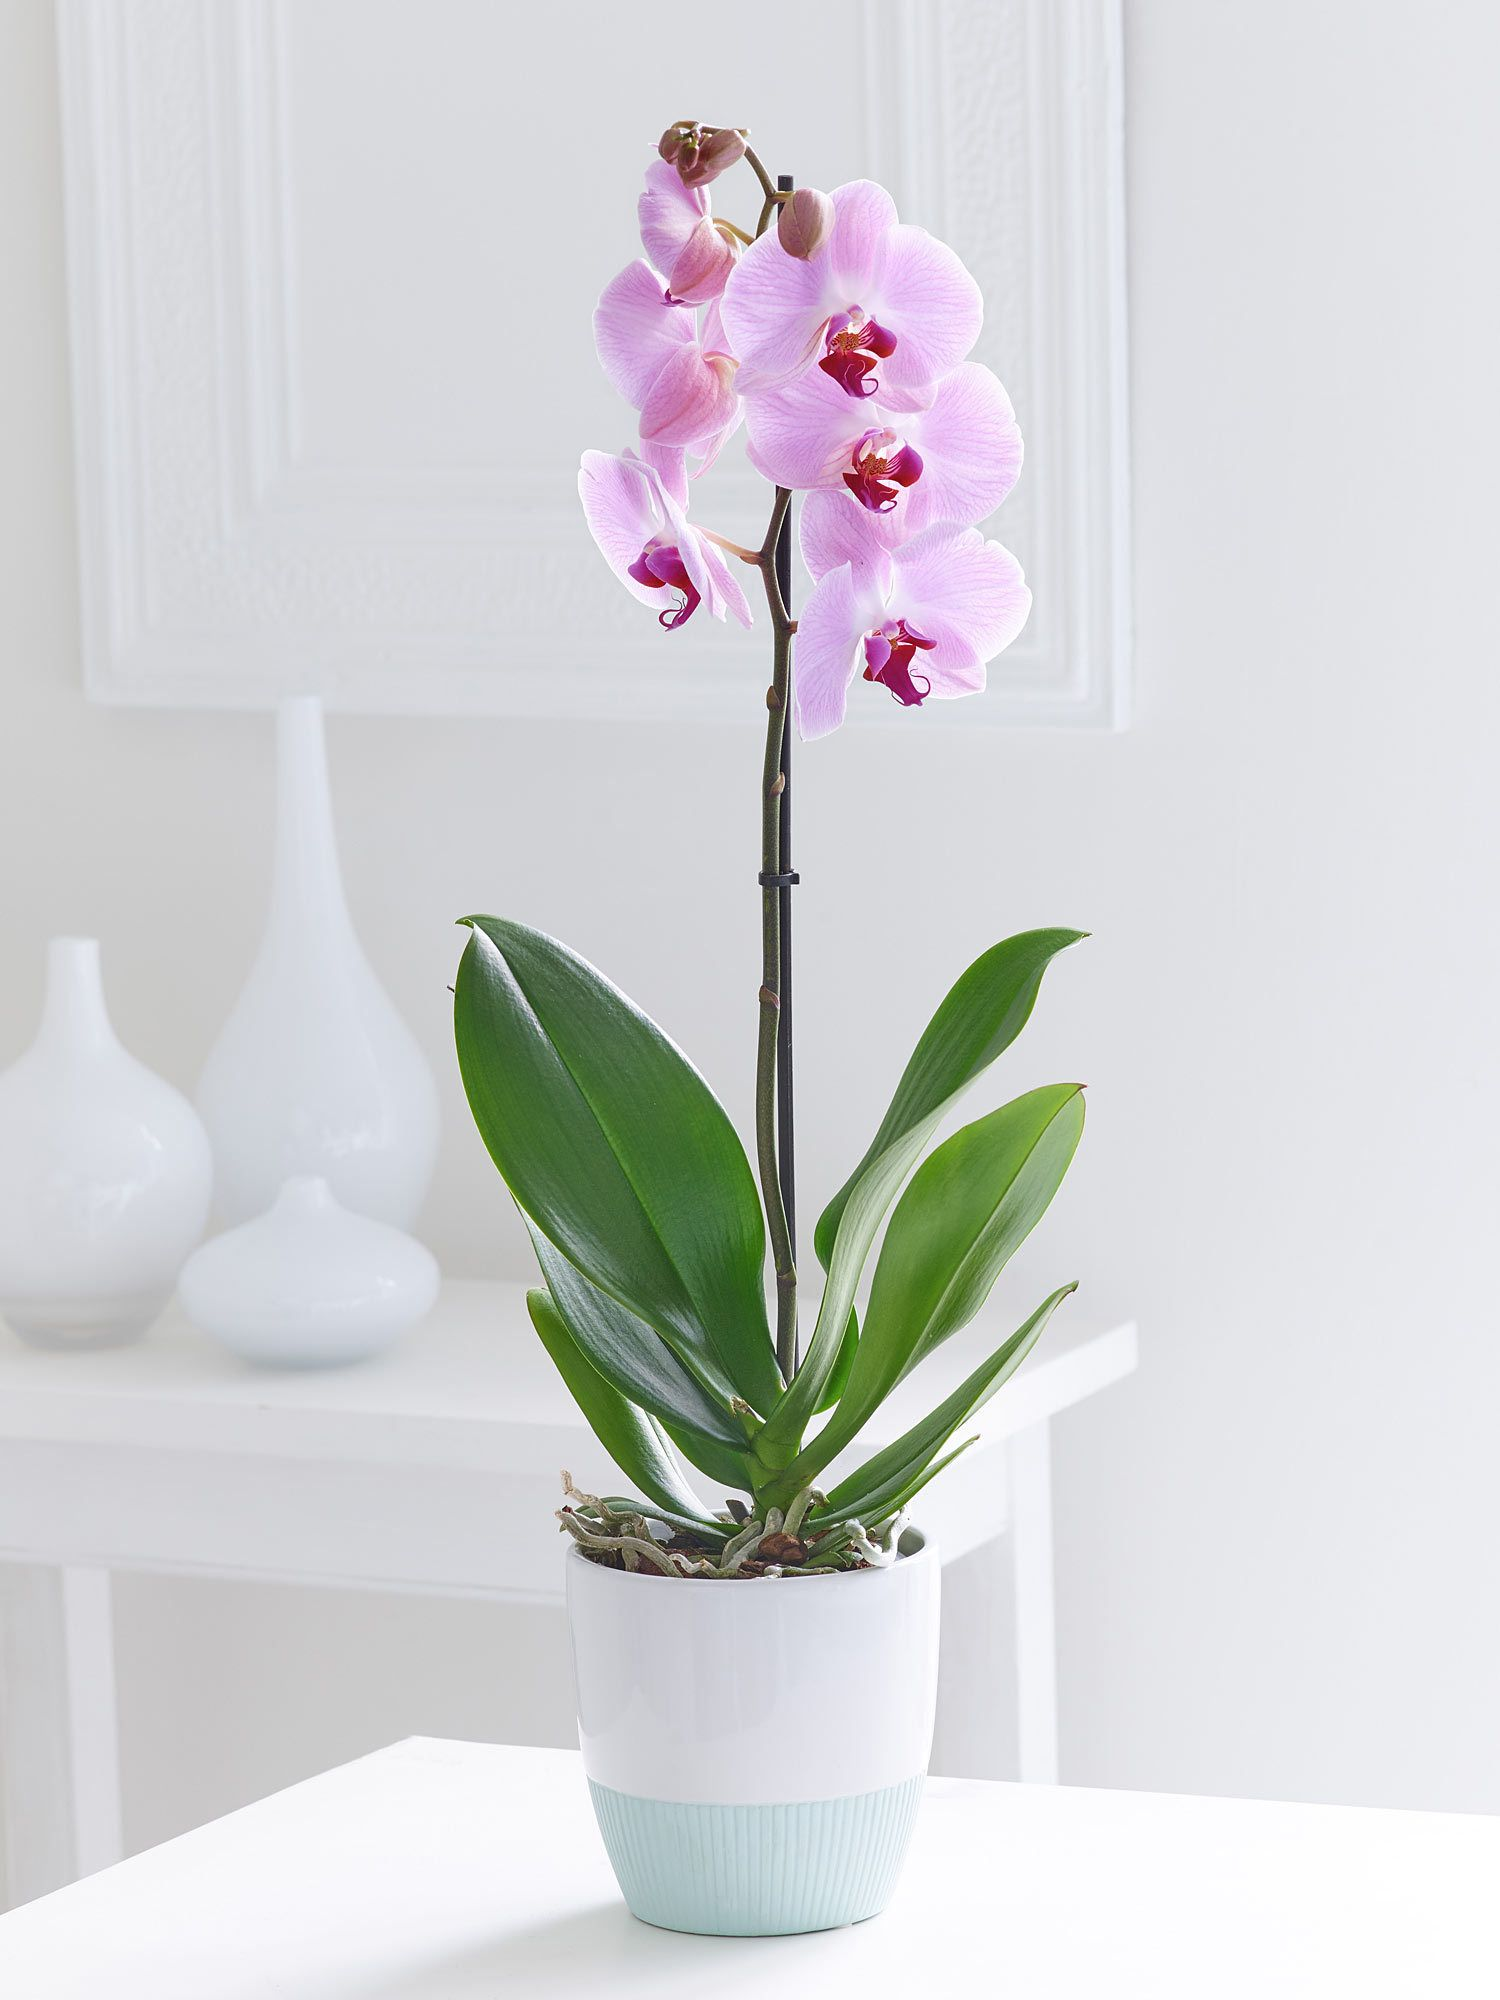 phalaenopsis orchid non toxic to cats orqu dea phalaenopsis orchid orchids y toxic plants. Black Bedroom Furniture Sets. Home Design Ideas